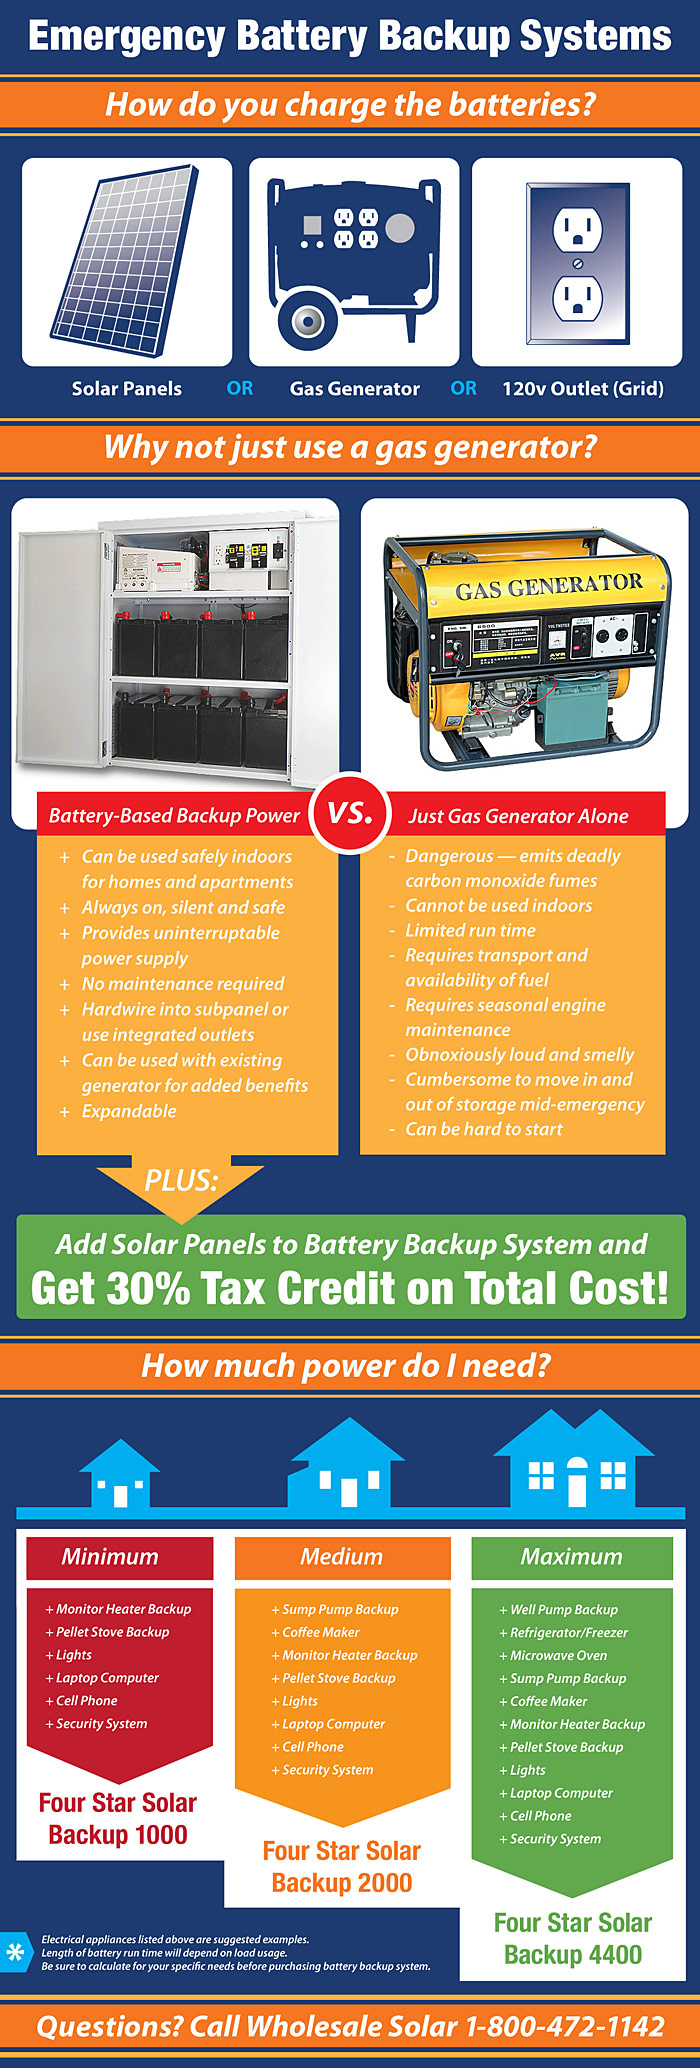 Battery Backup Infographic